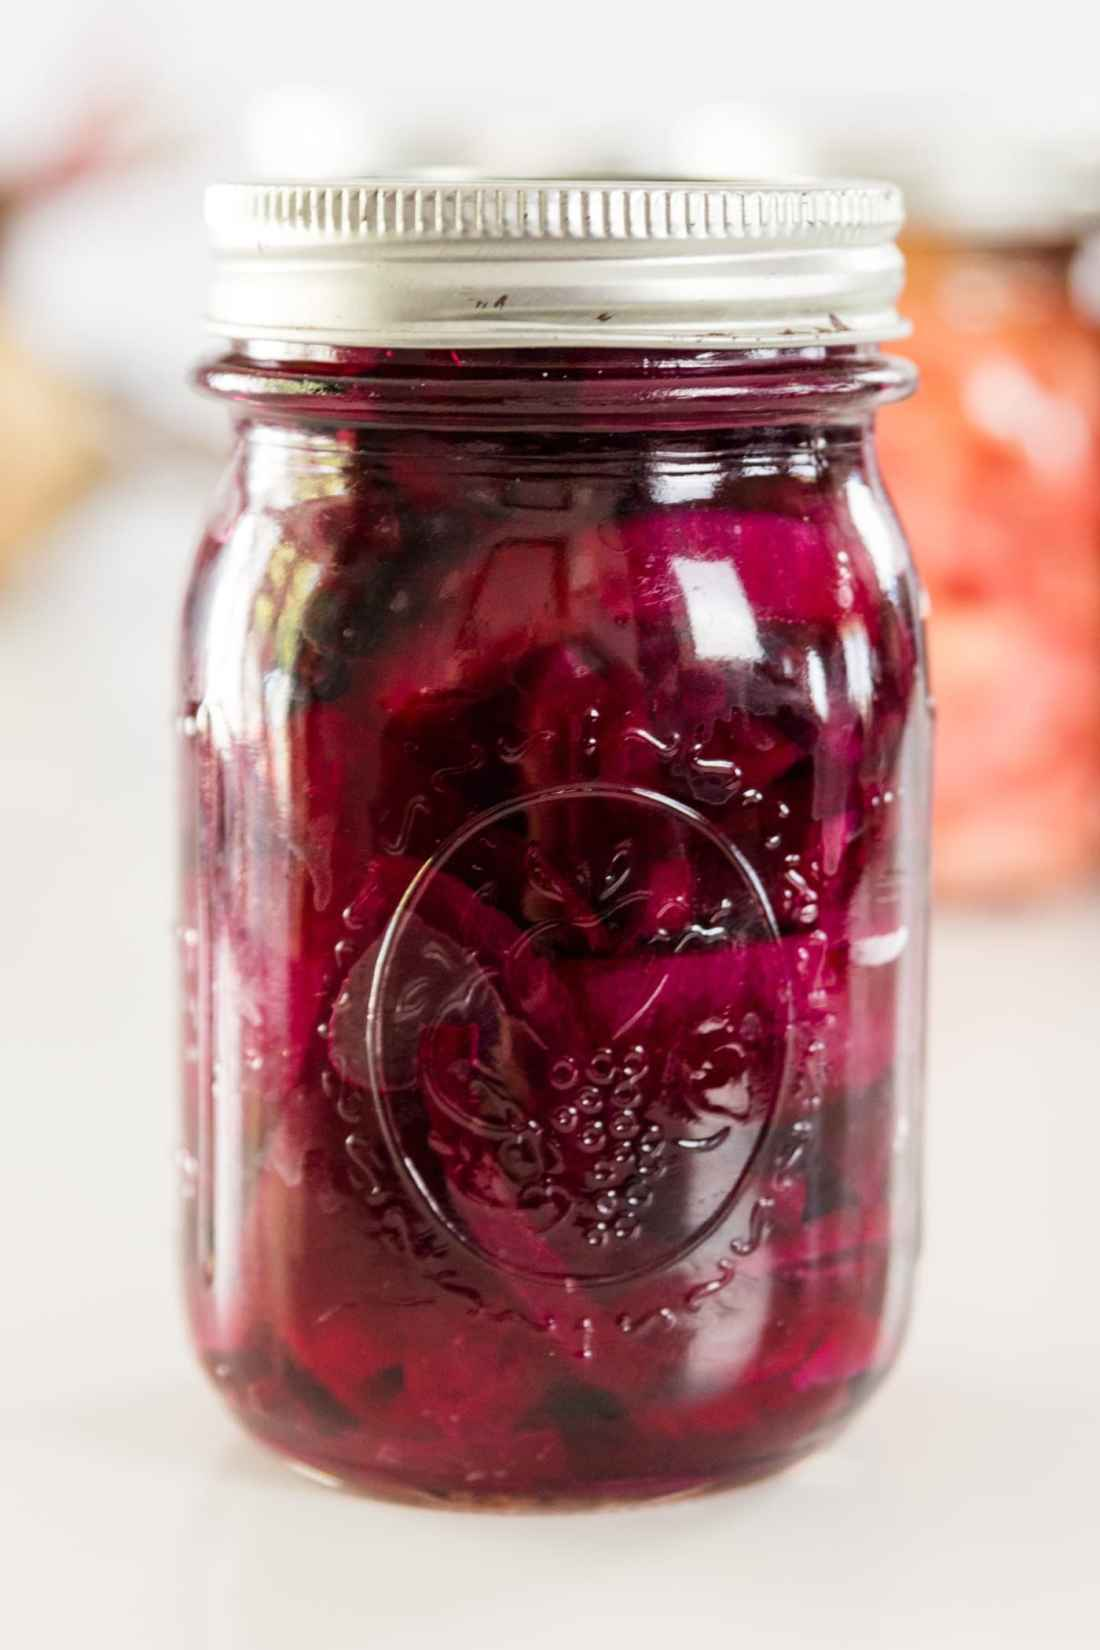 A red canned beet recipe in a Ball canning jar on a white surface with Ball canning jars in background.